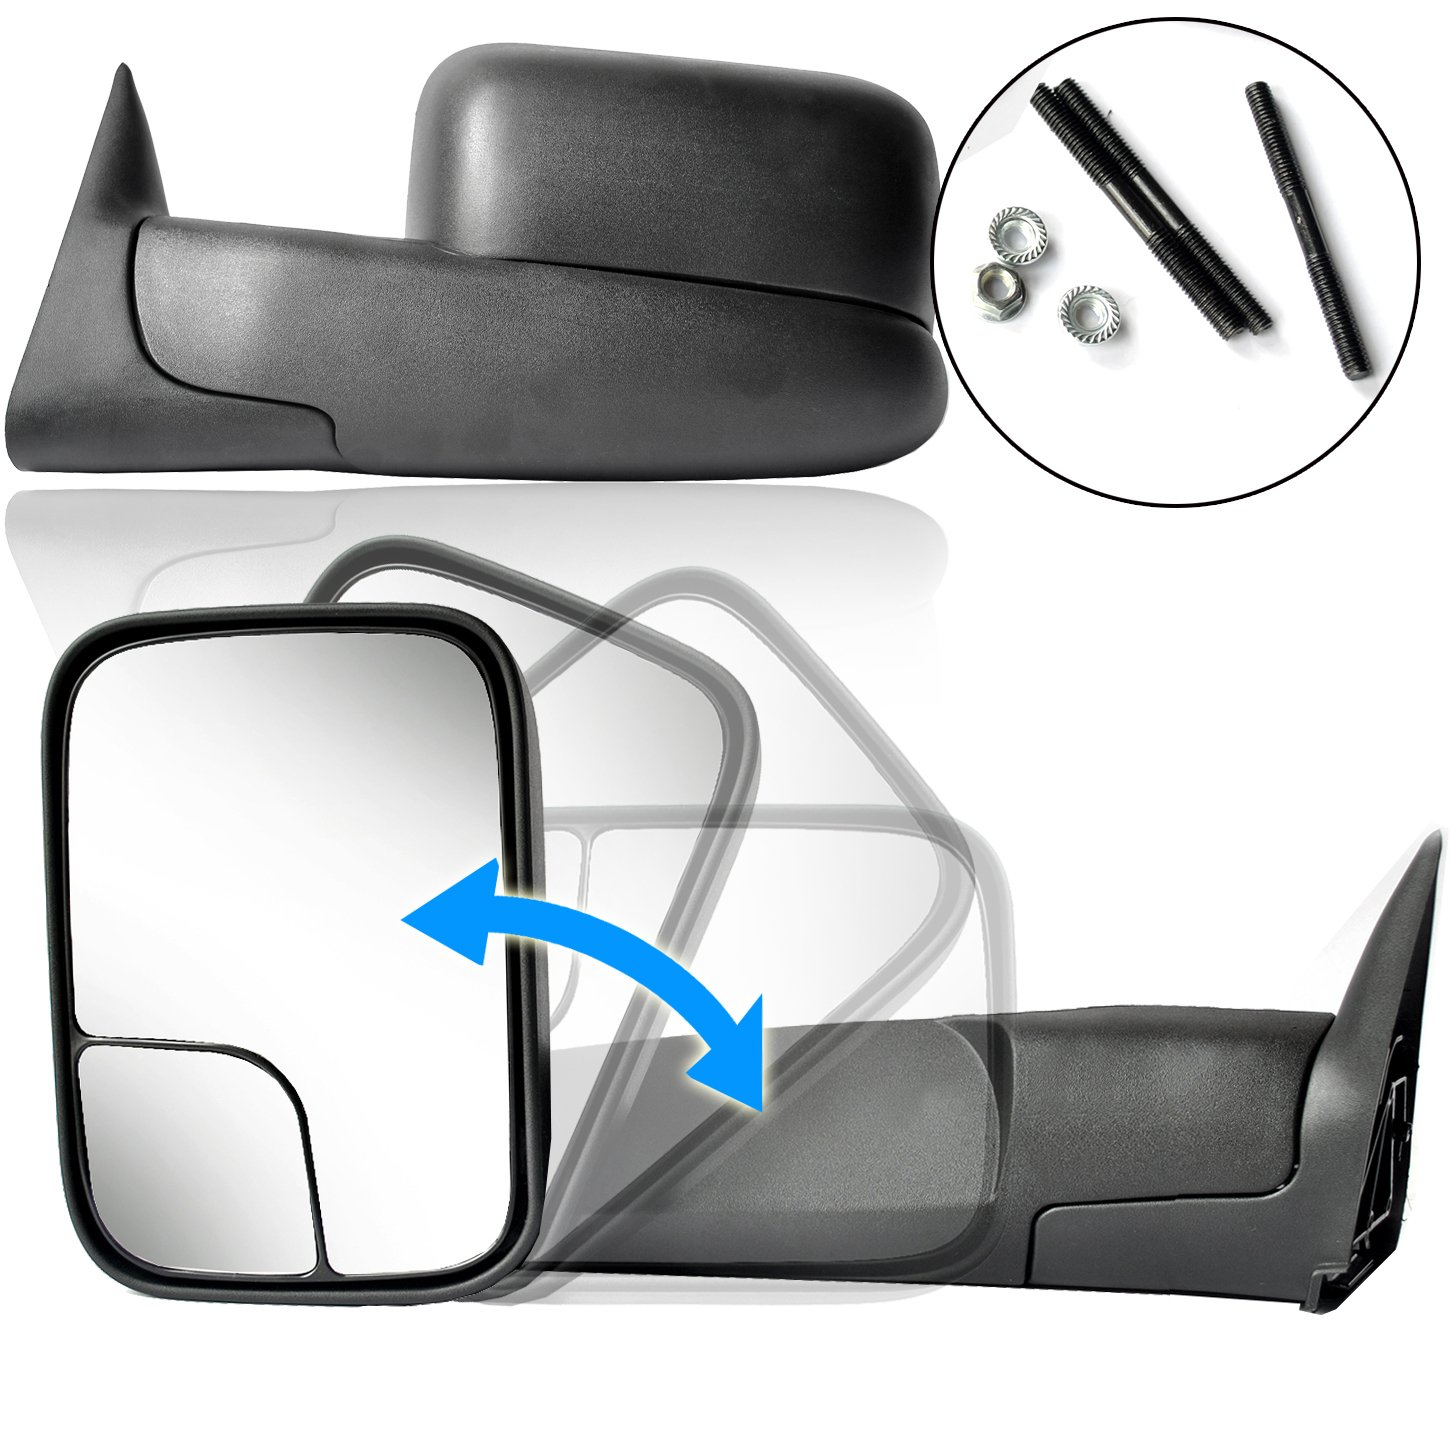 ECCPP Towing Mirror Replacement fit Dodge 94-01 Ram 1500, 94-02 Ram 2500 3500 Pickup Truck Manual Towing Tow Mirror Left Driver and Right Passenger Pair Set Fits 60177-78C Side Mirror by ECCPP